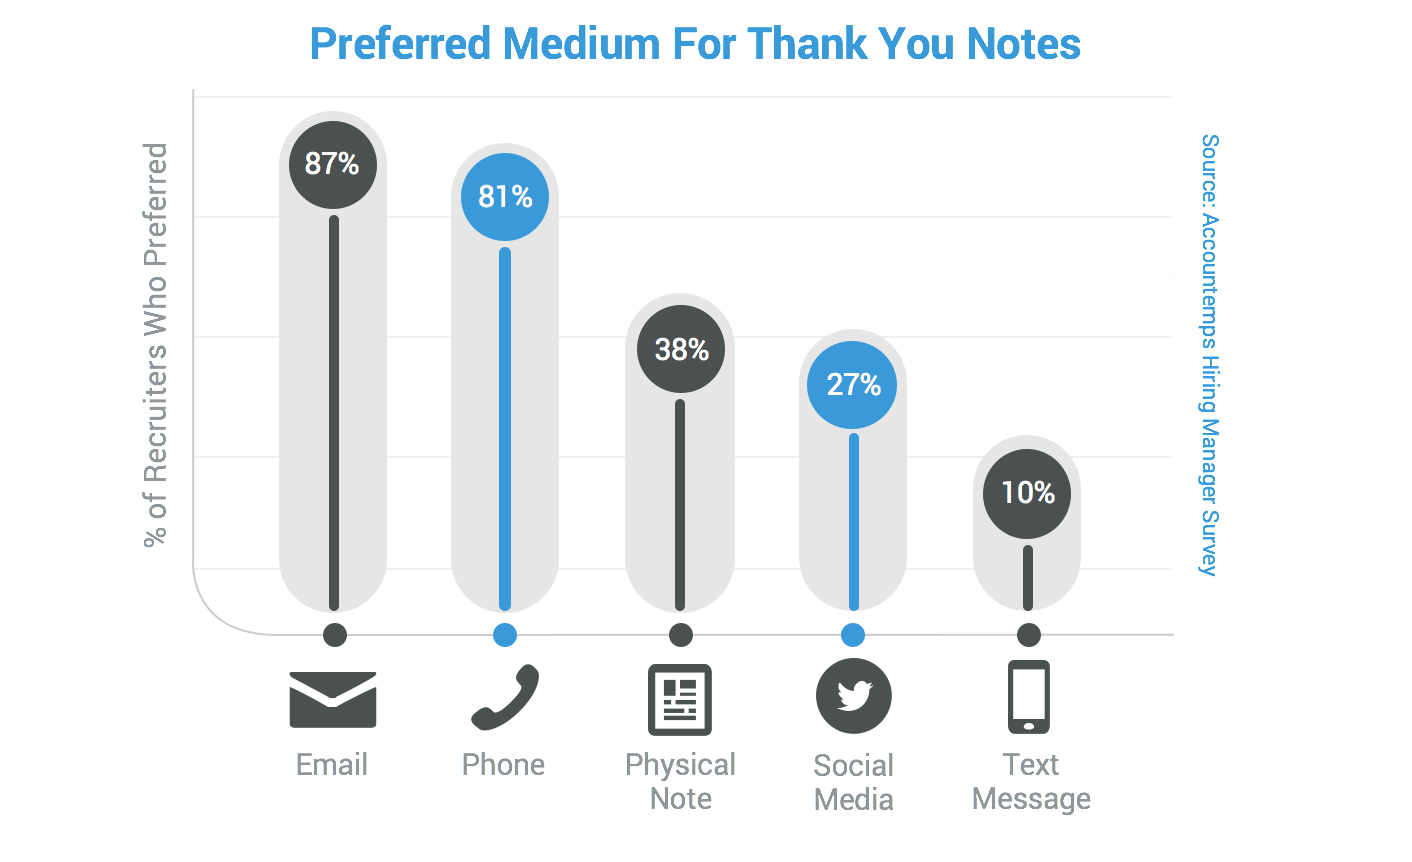 Graphic of Survey Results on Preferred Thank You Note Medium